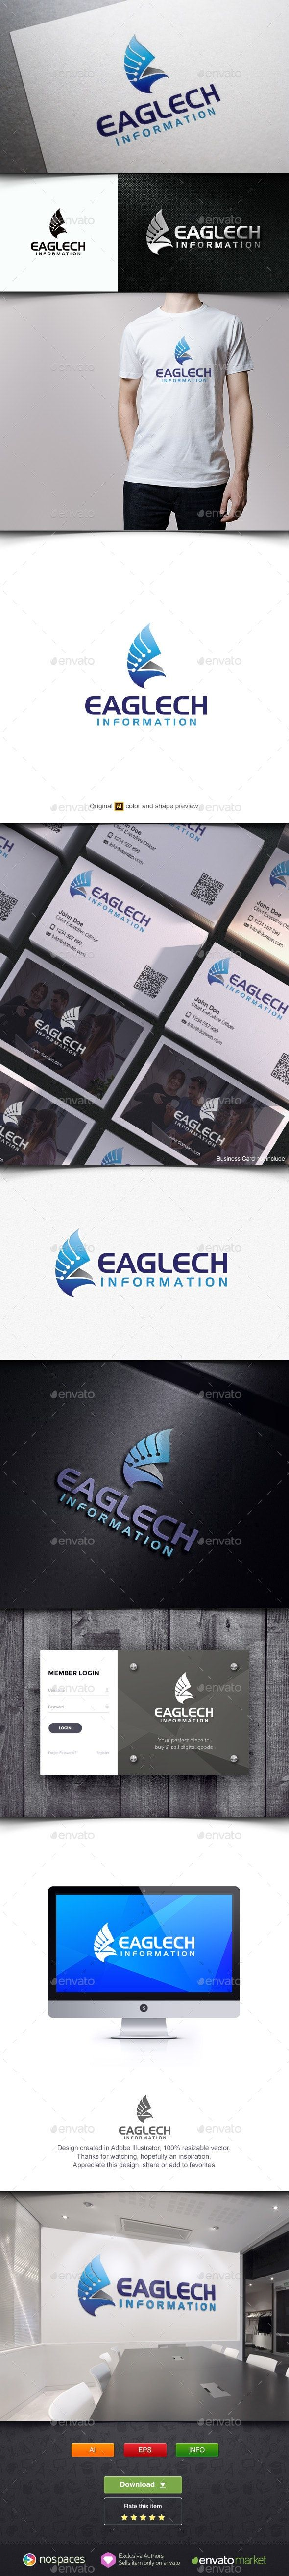 Eagle Tech Logo Design Template Pet Logo Design Music Logo